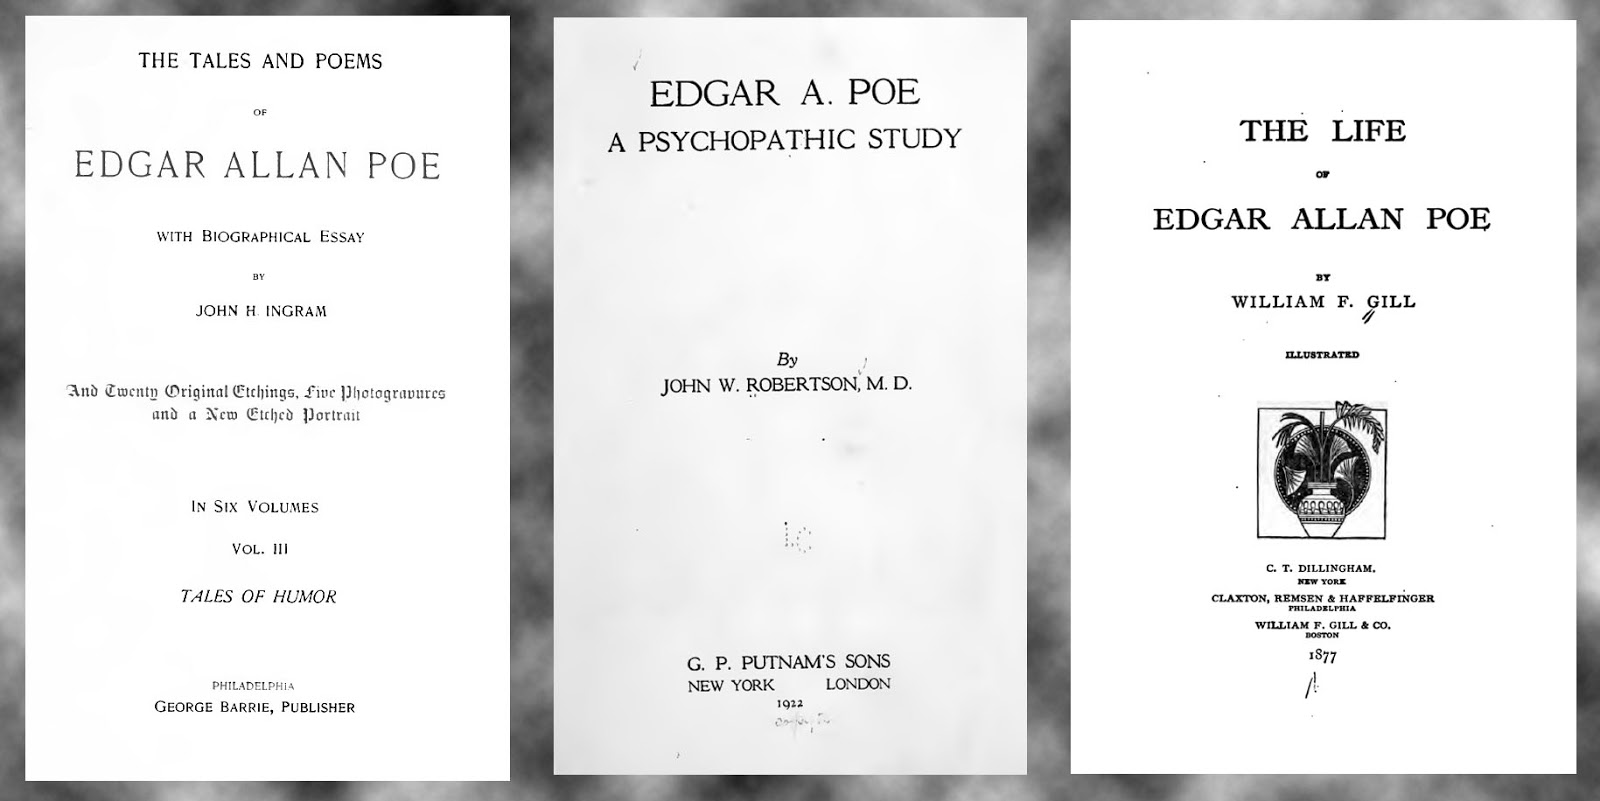 poe essay on poetry Free edgar allan poe papers, essays, and research papers.